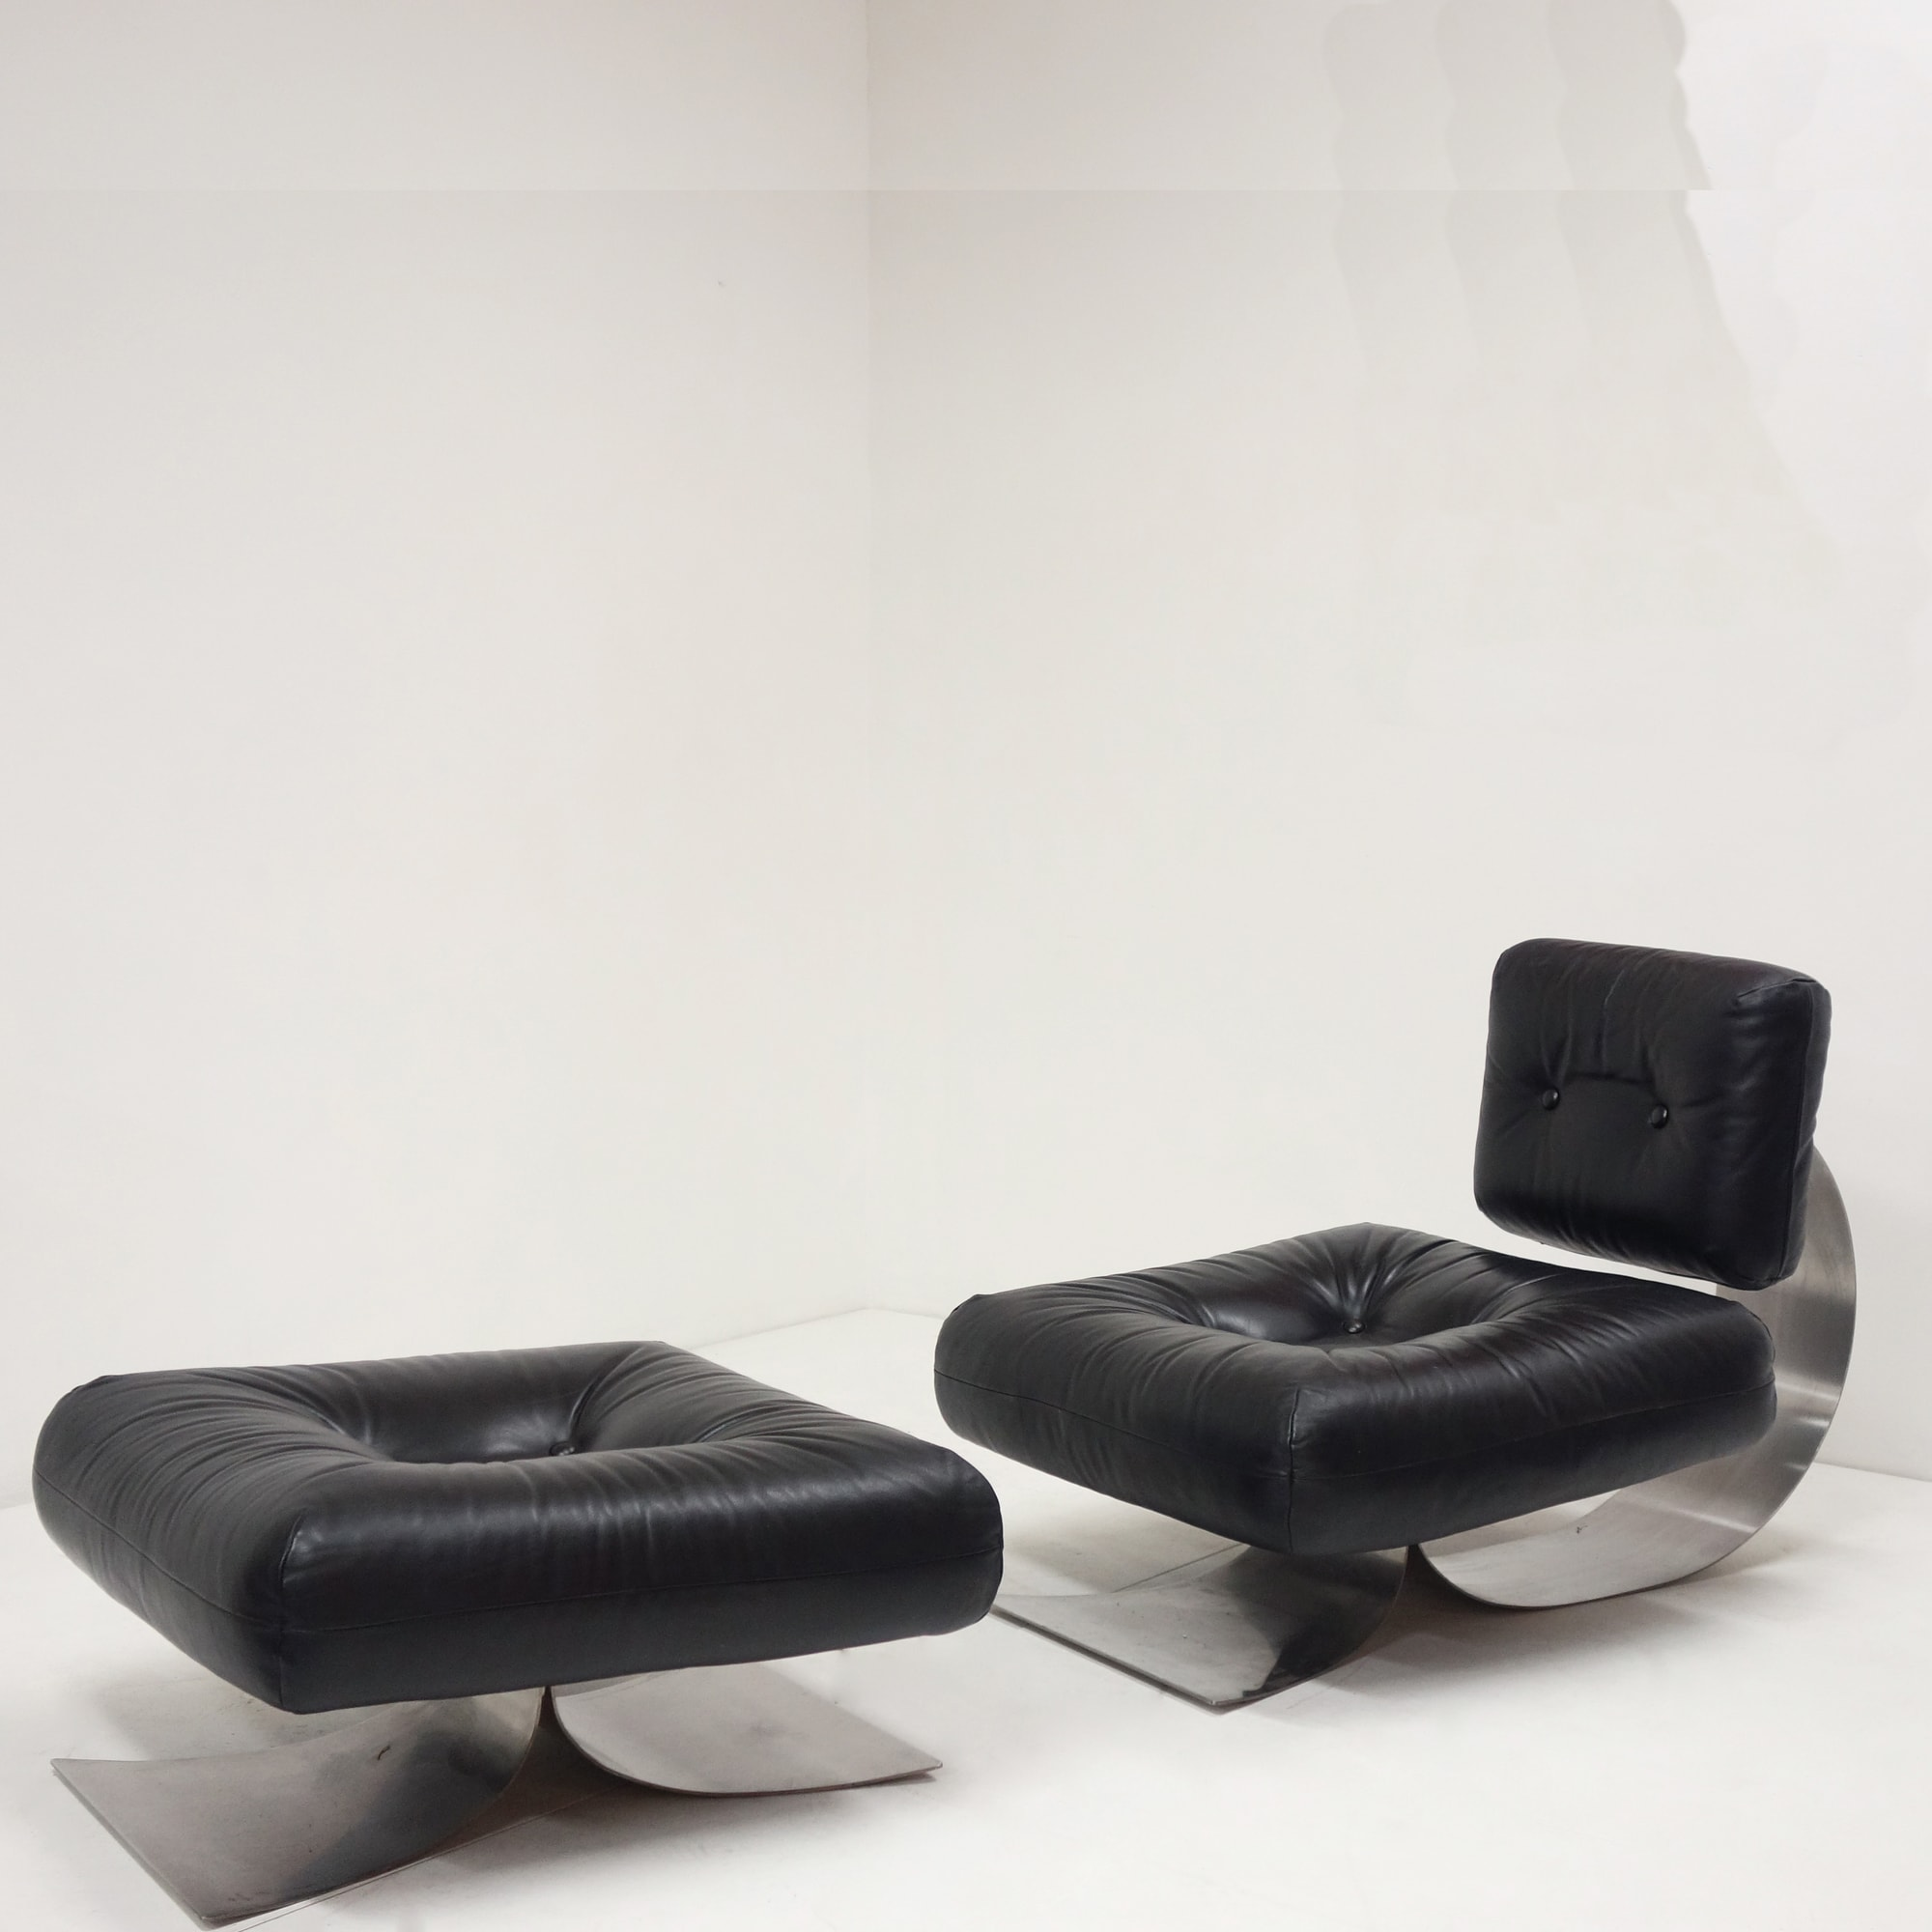 Oscar Niemeyer, Low chair and its ottoman, vue 01